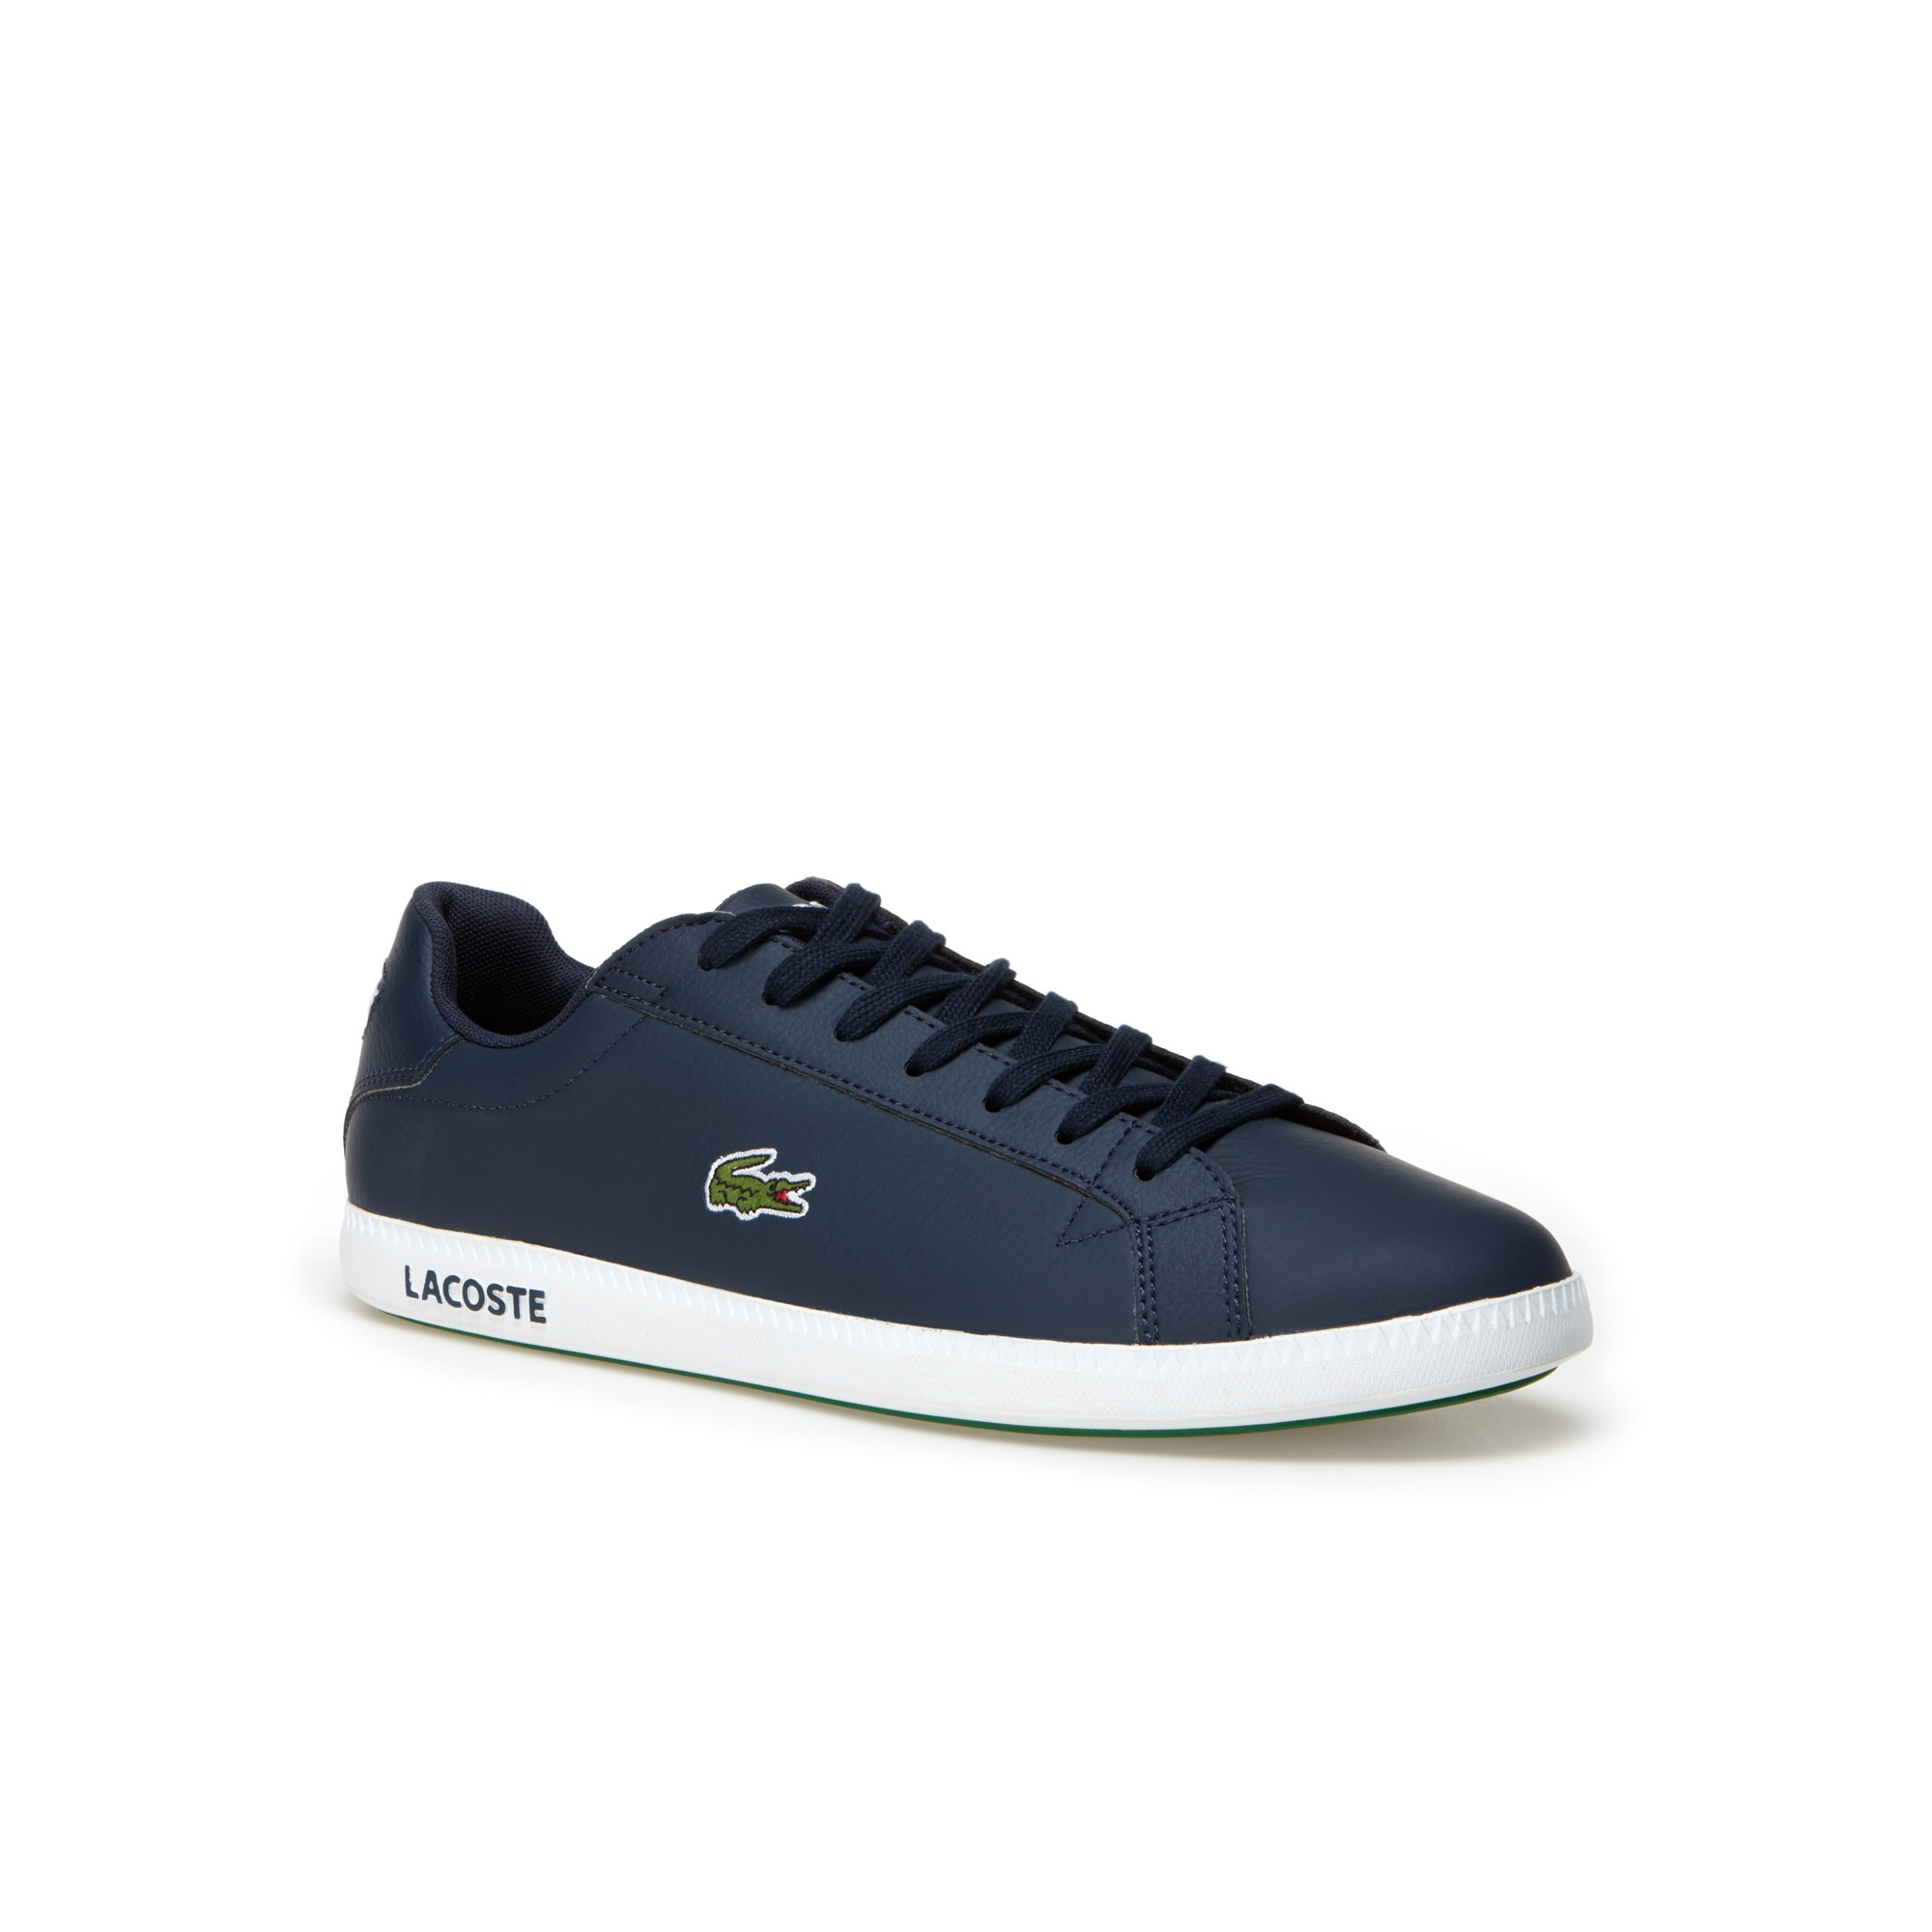 Men's Graduate low-rise trainers in leather with Lacoste branded outsole